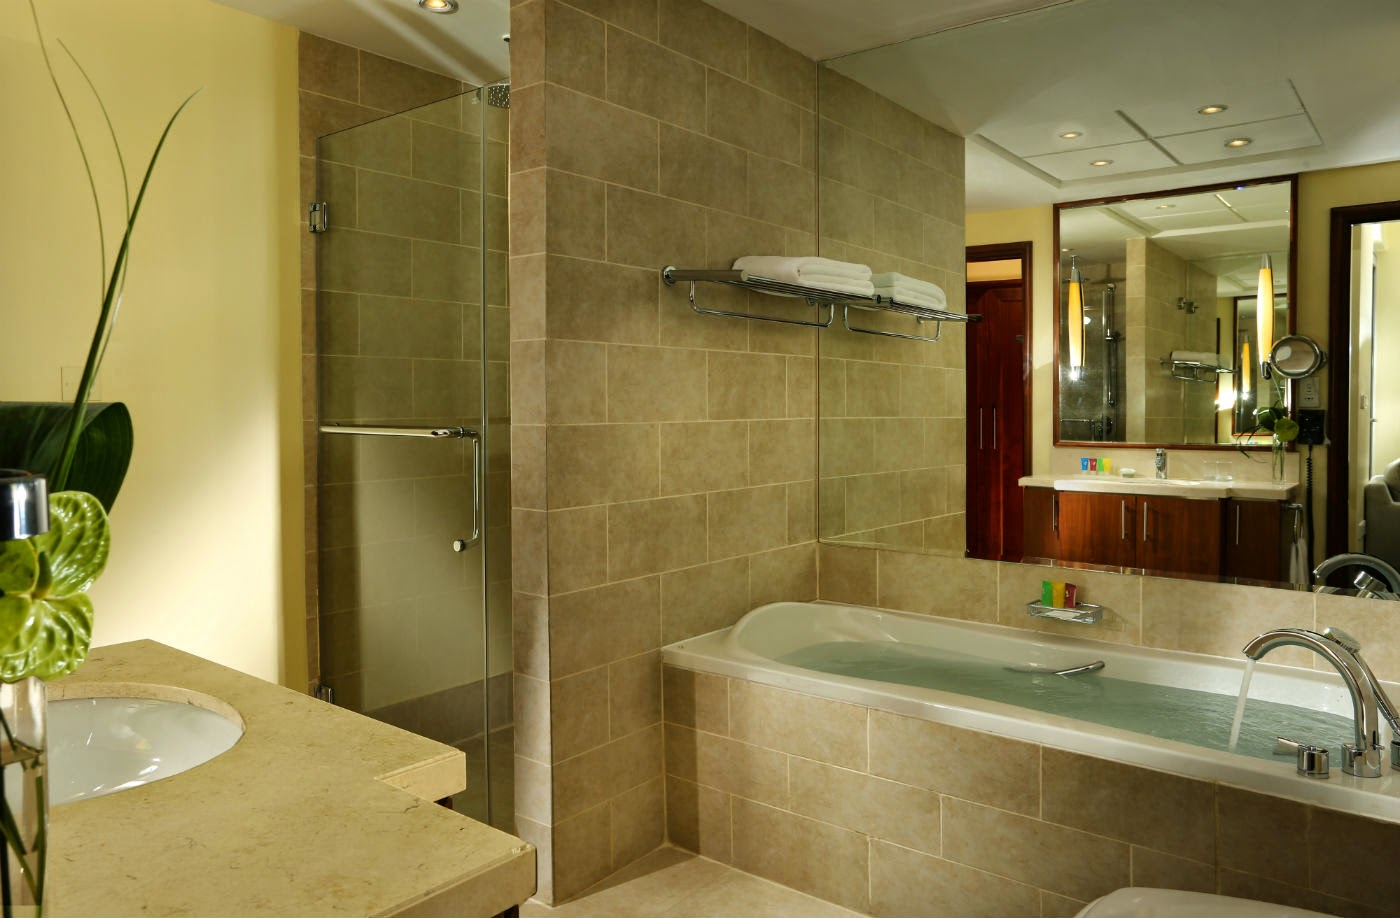 All suites include a large bathroom with walk-in shower and separate bathtub